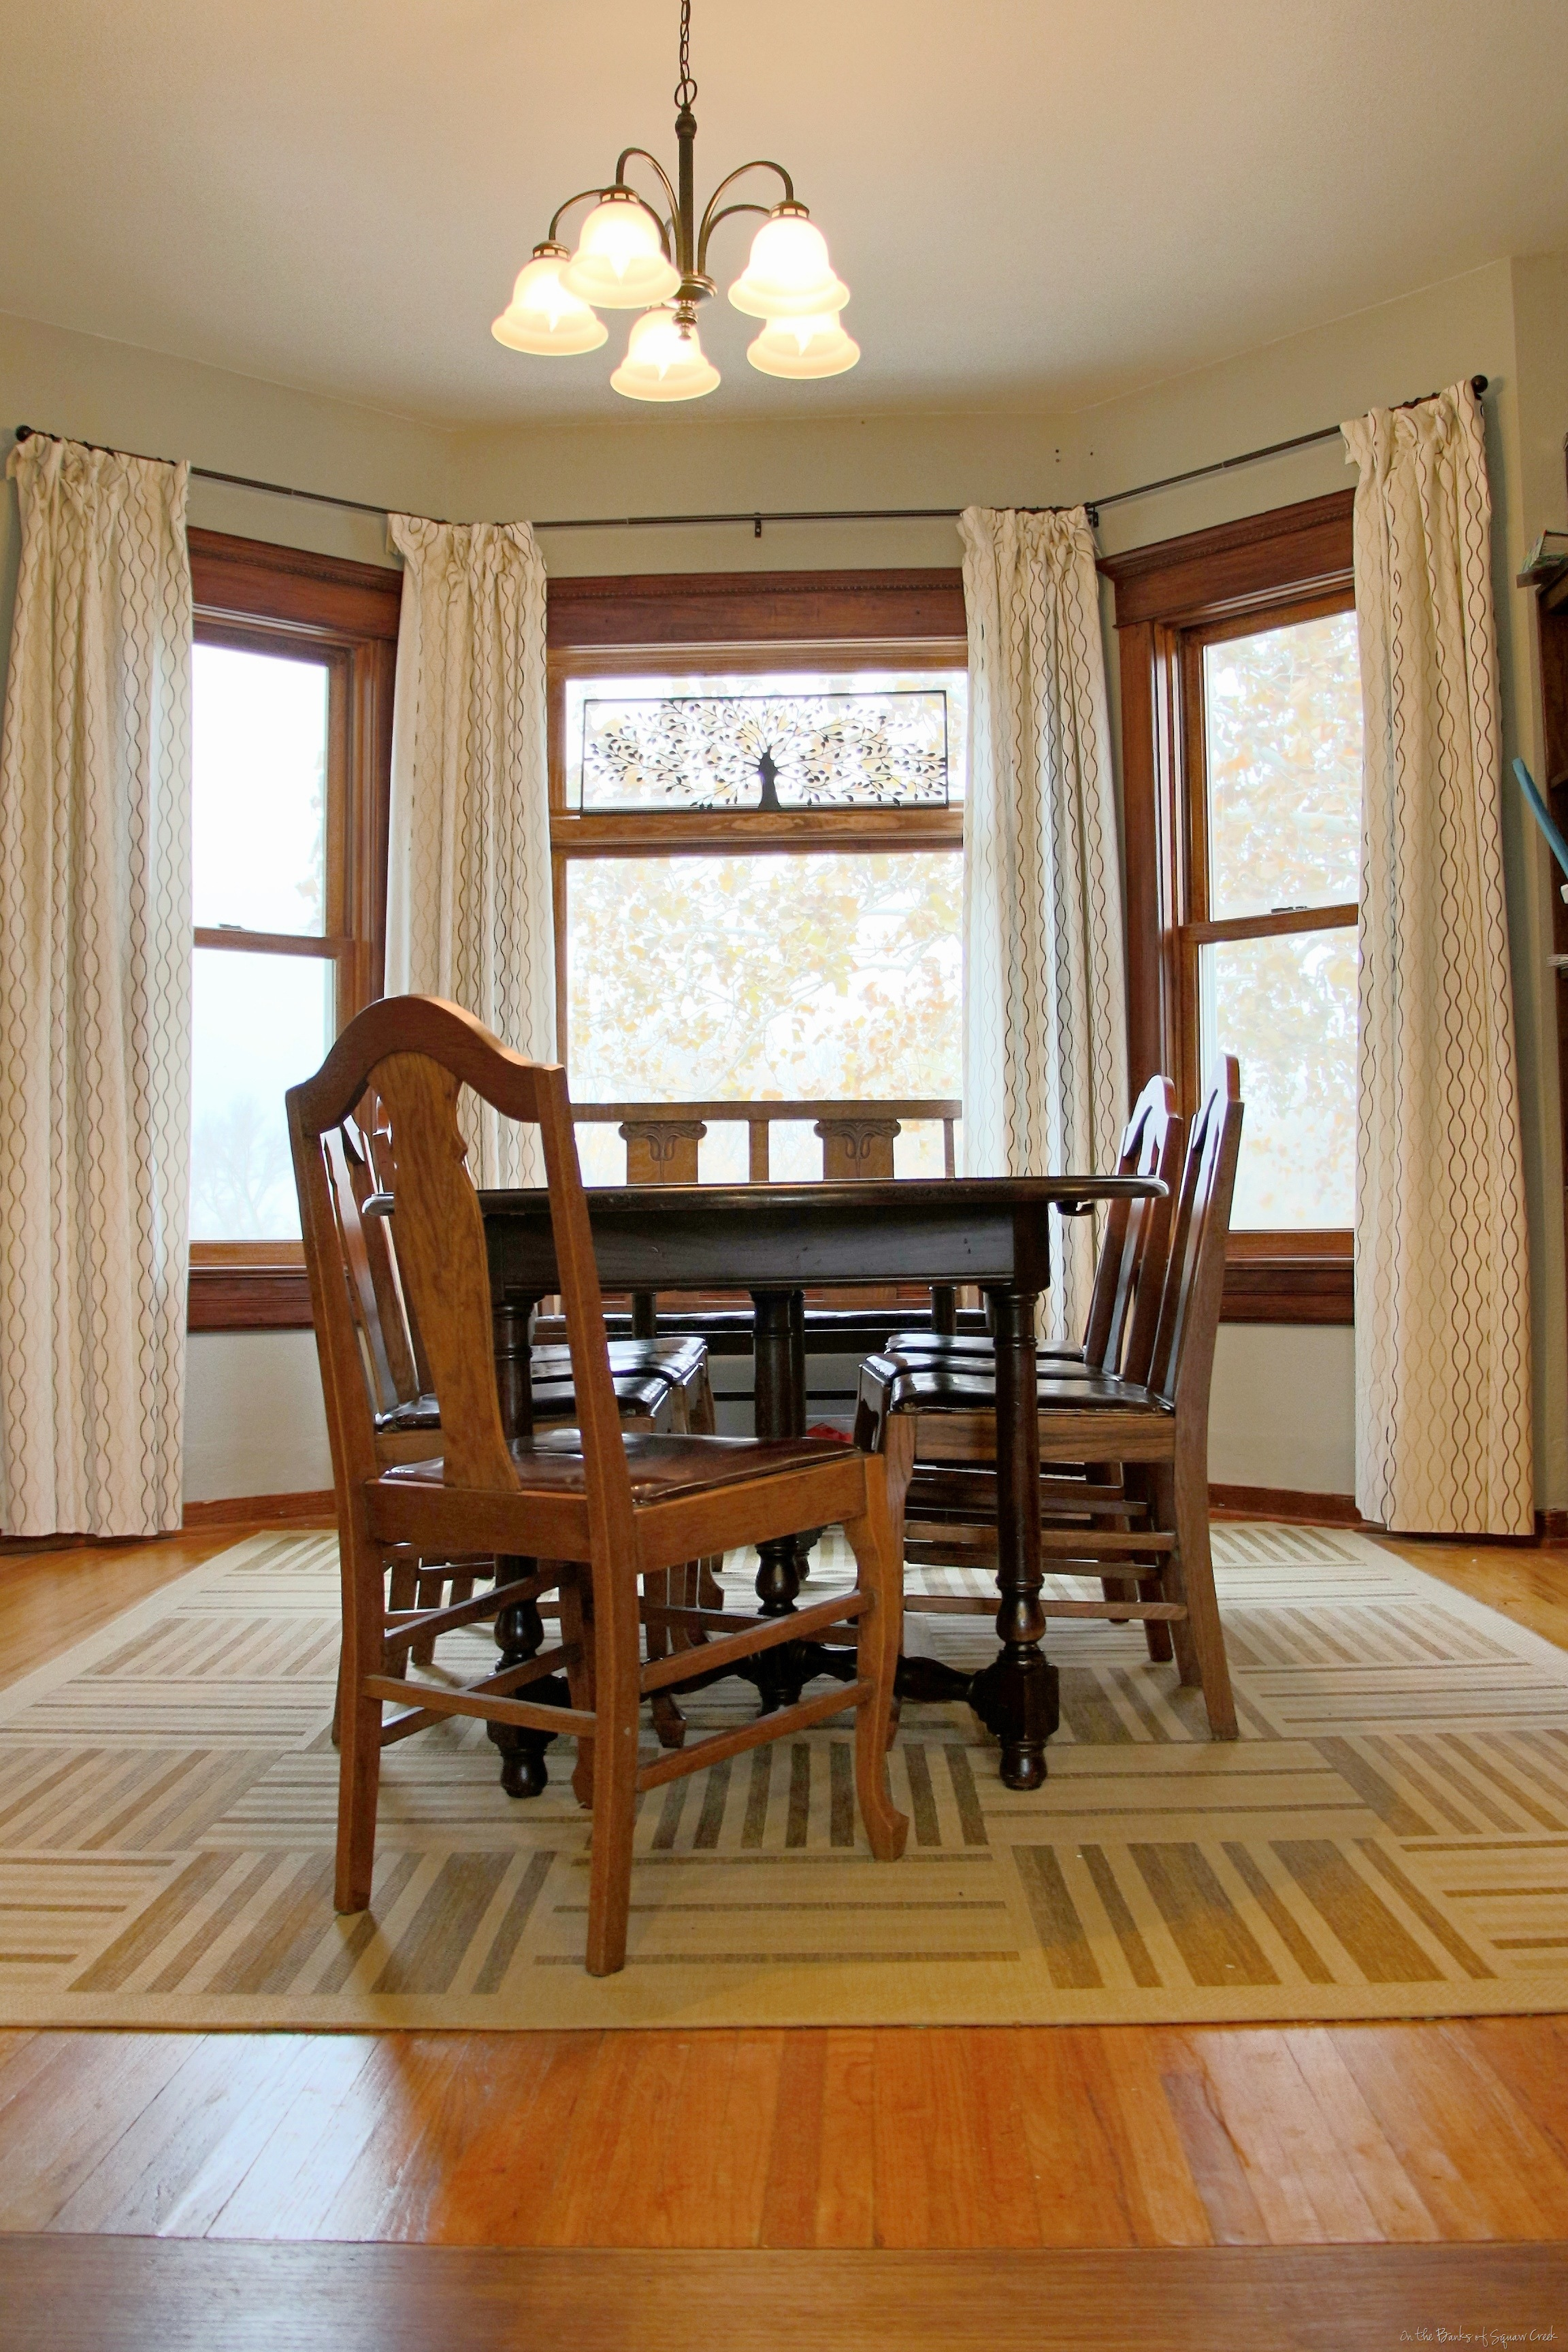 {Guestpost} Thoughts on Dining Room Area Rugs - Reality Daydream